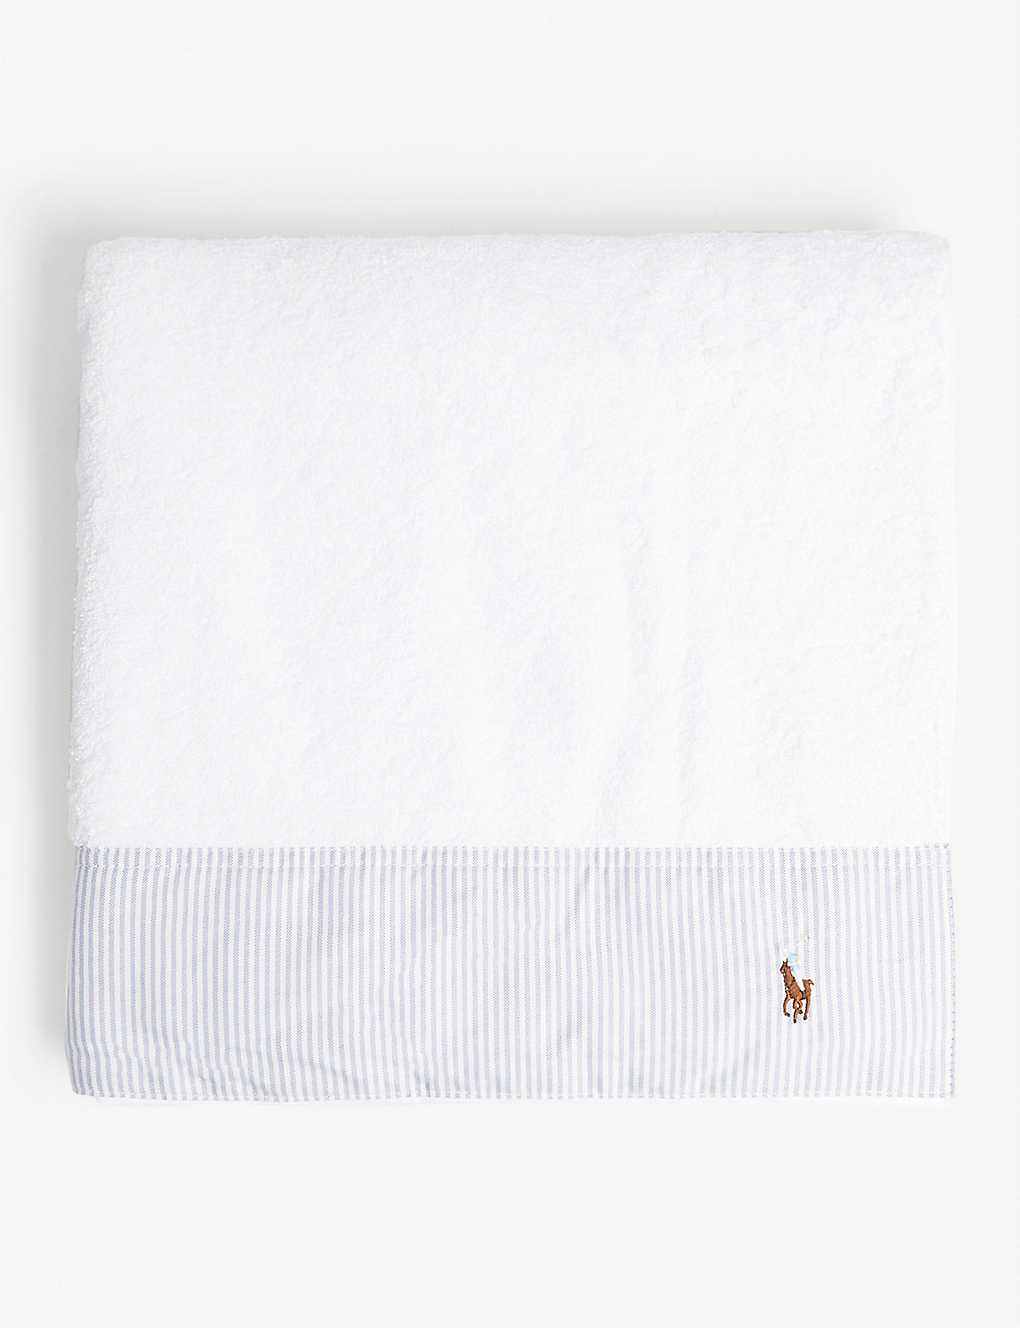 RALPH LAUREN HOME: Oxford striped cotton bath towel 70x140cm